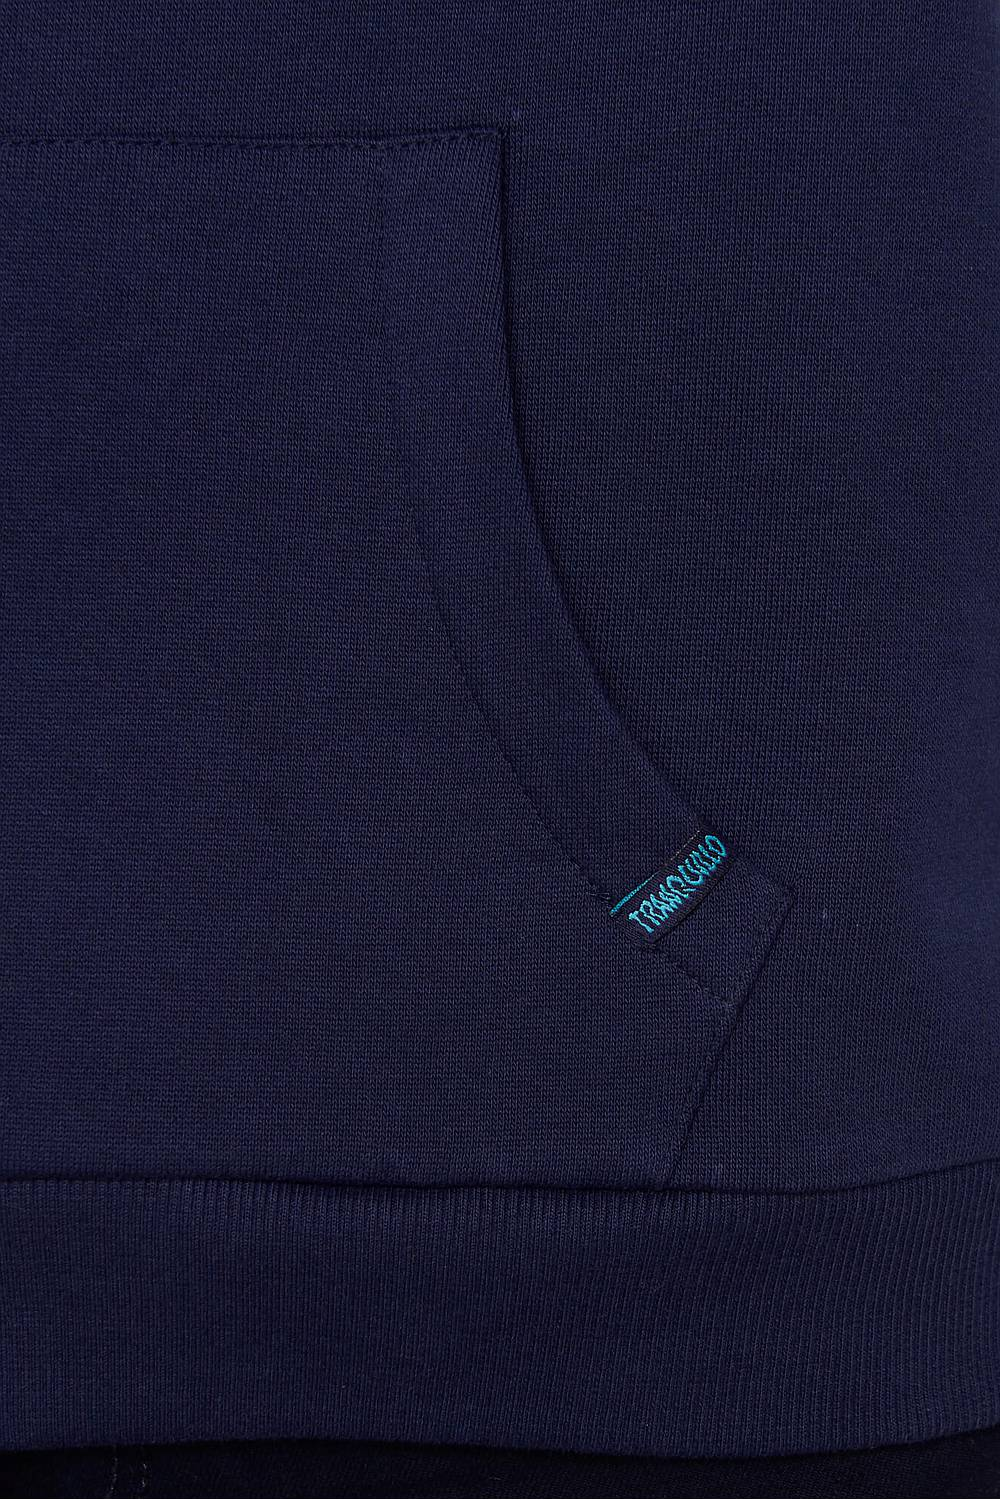 Sweater KARITA navy conciencia